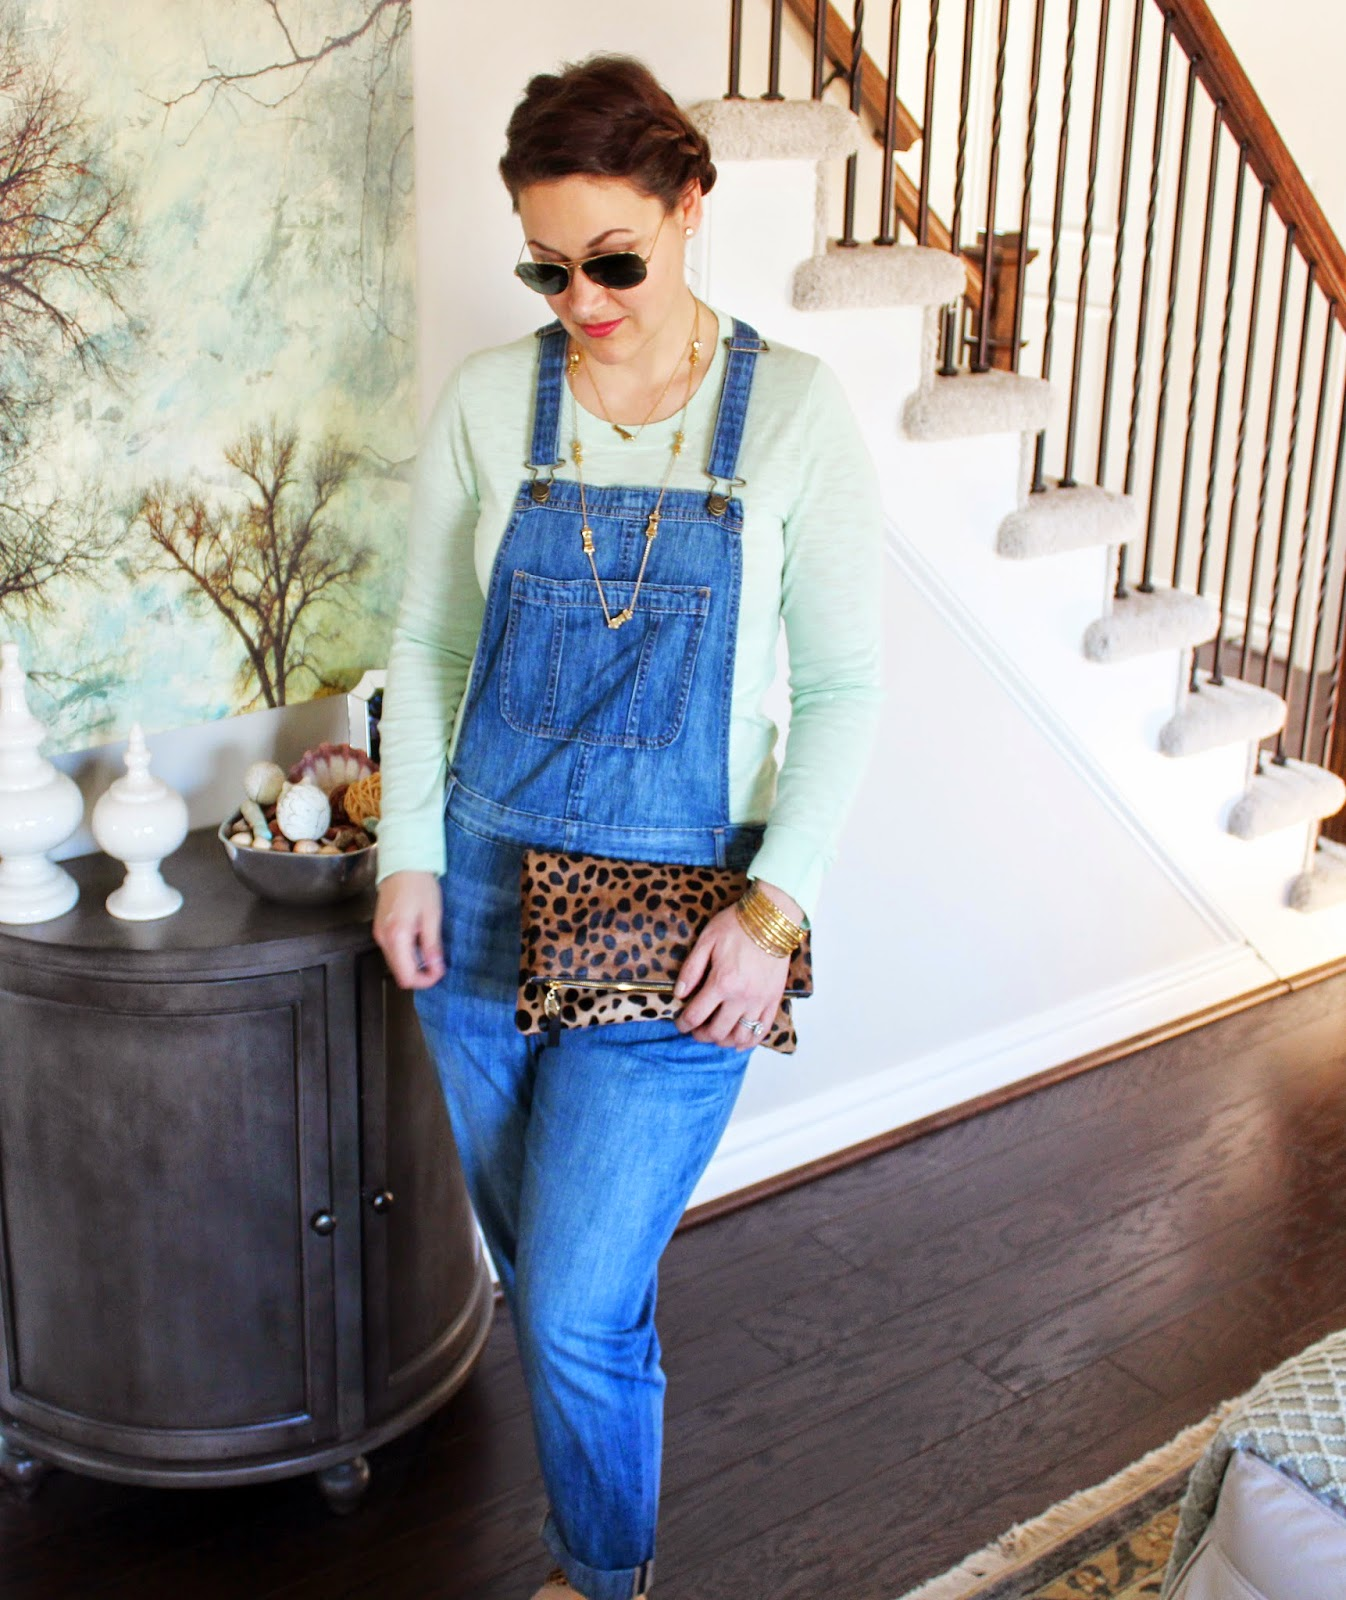 Old Navy Overalls, Jcrew Teddie Sweater, Teddy, Clare V Clutch, Leopard, Kate Spade Bow